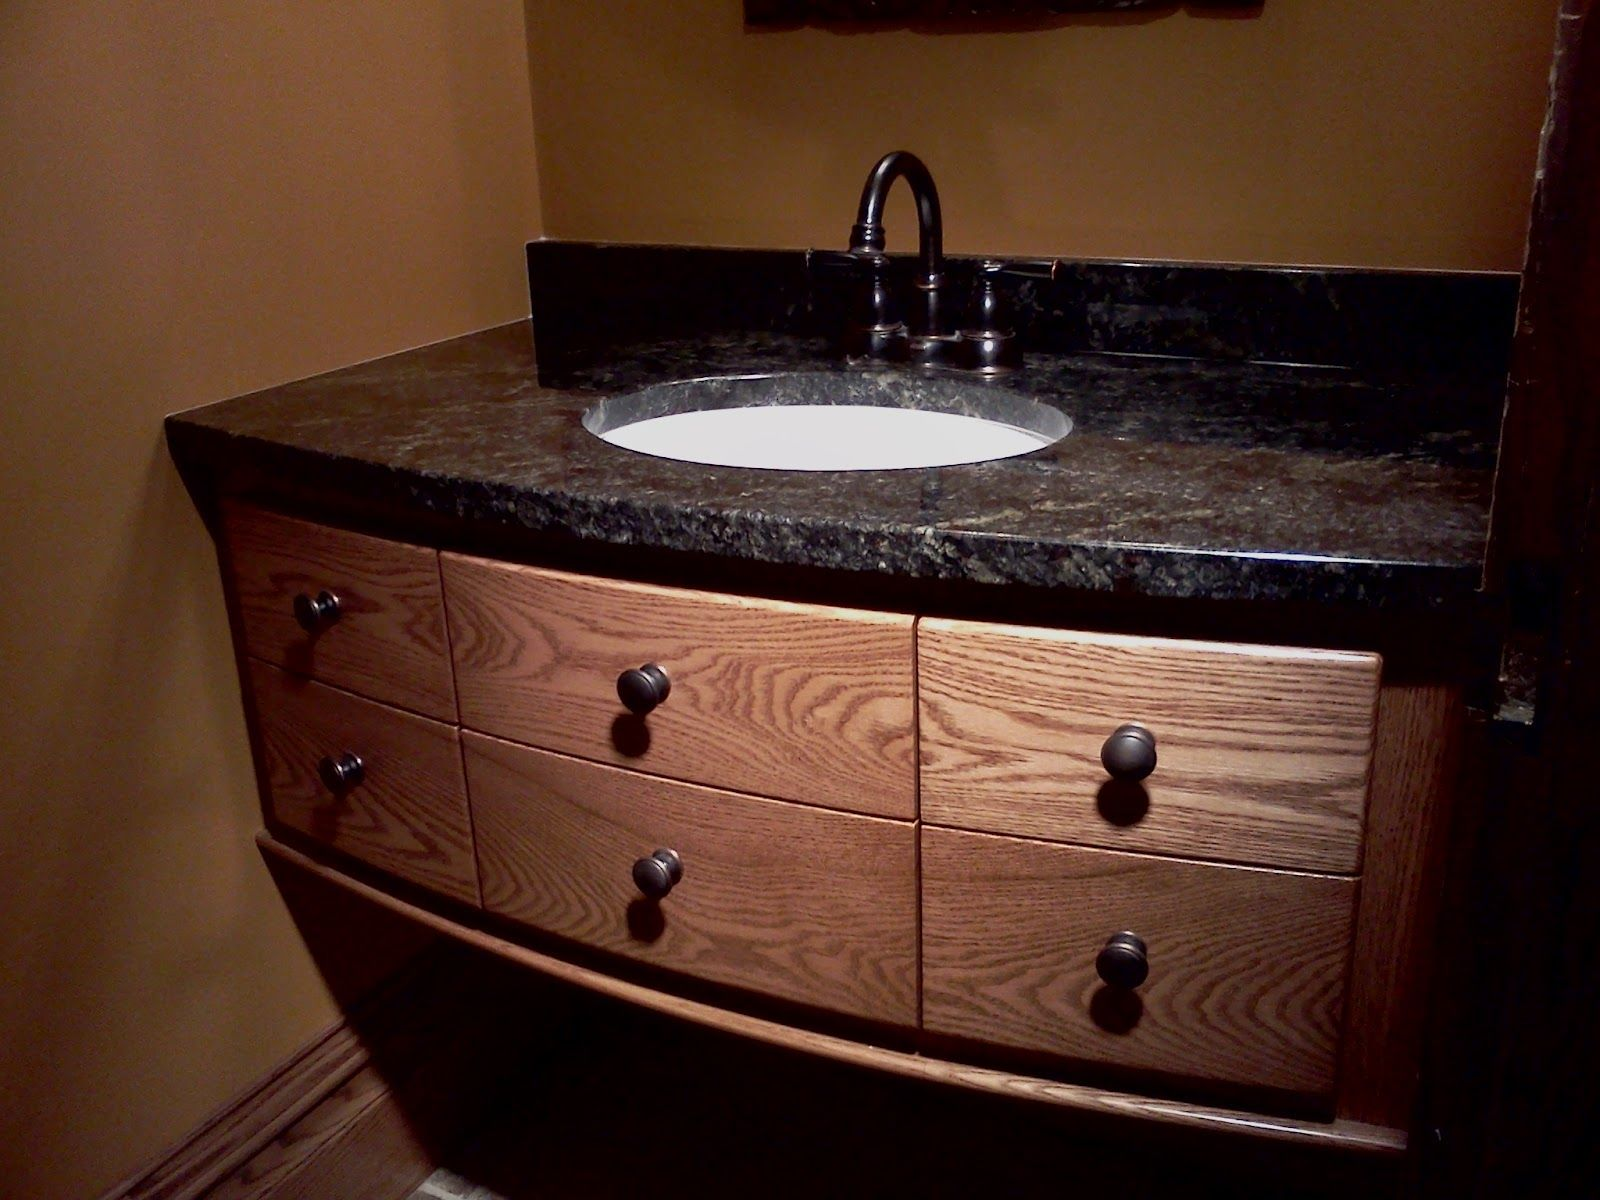 Photography Gallery Sites Excellent Black Granite With Six Drawers Teak Wood Materials At Bathroom Vanities With Tops Single White Washbasin And Cool Stainless Taps On Broken White